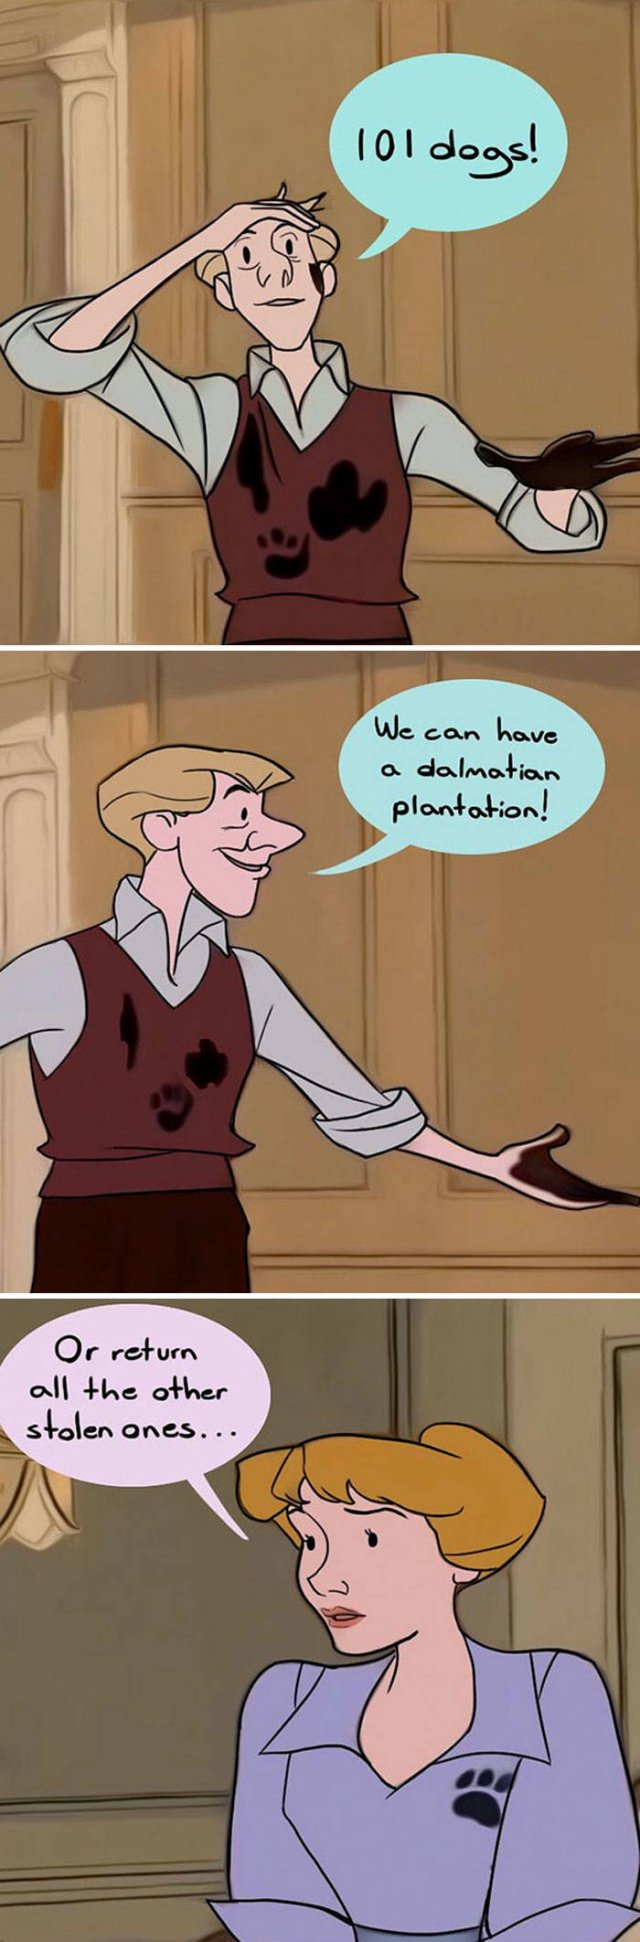 If Disney Movies Were Realistic